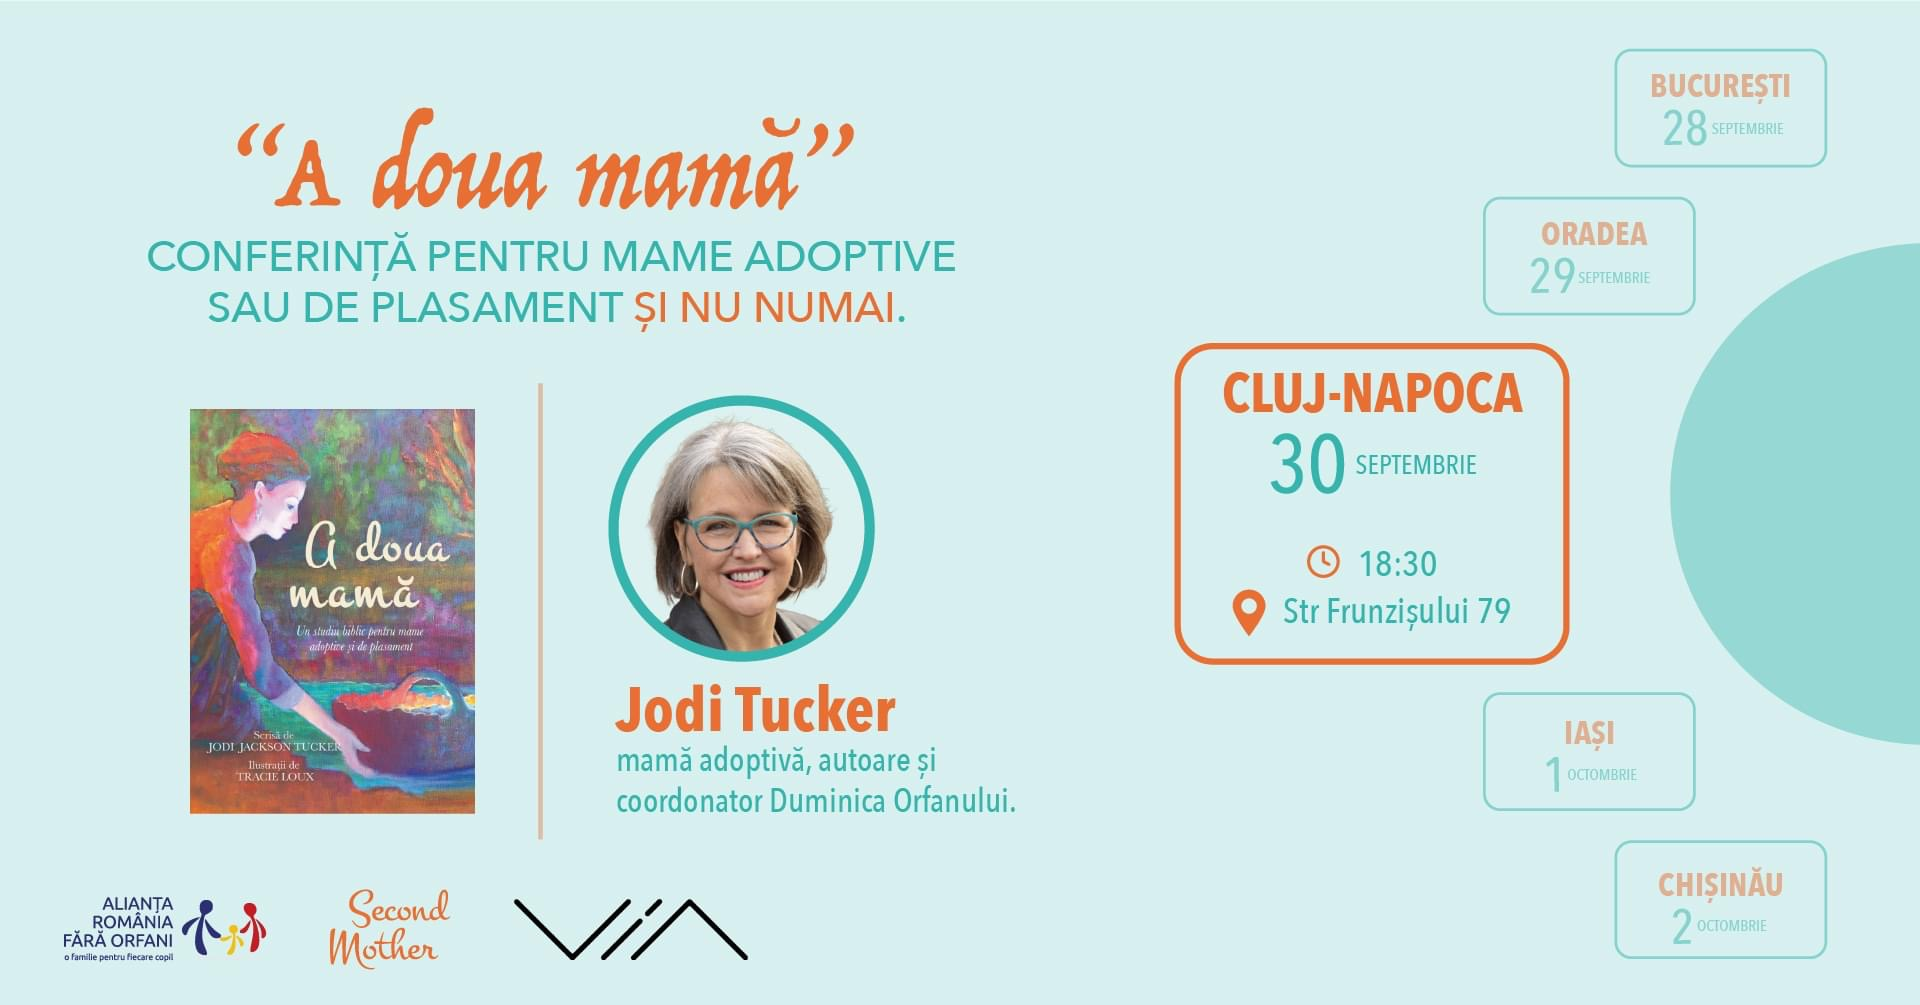 Second mothers event in Cluj